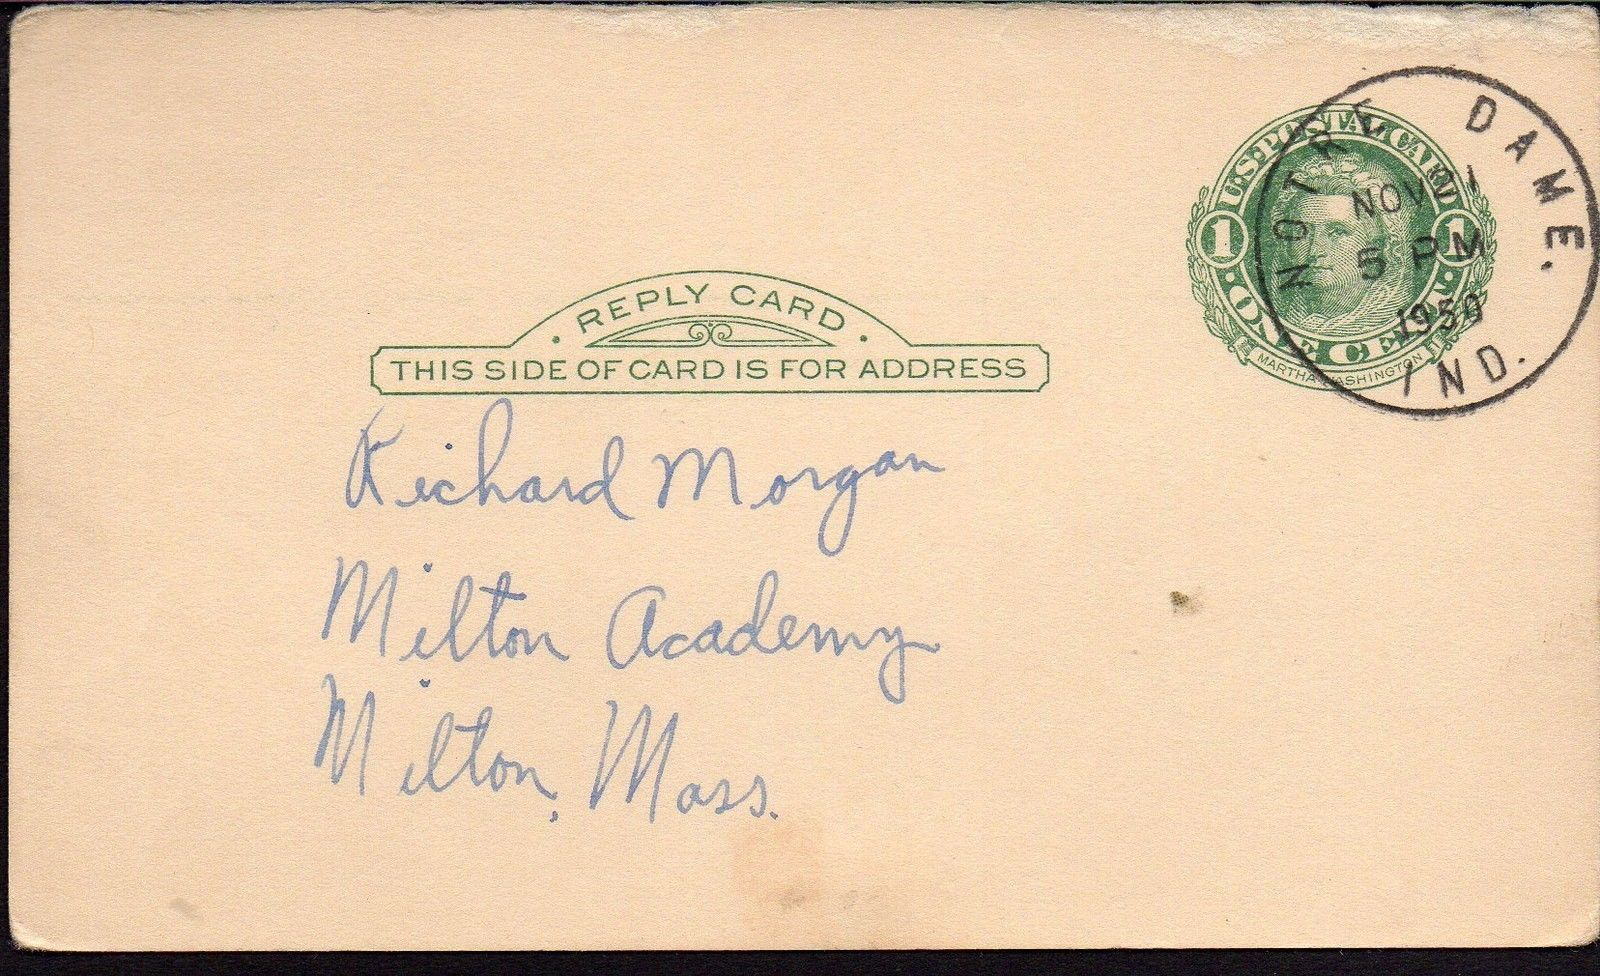 FRANK LEAHY Autograph. Signed on a government postcard. Famed Notre Dame coach.